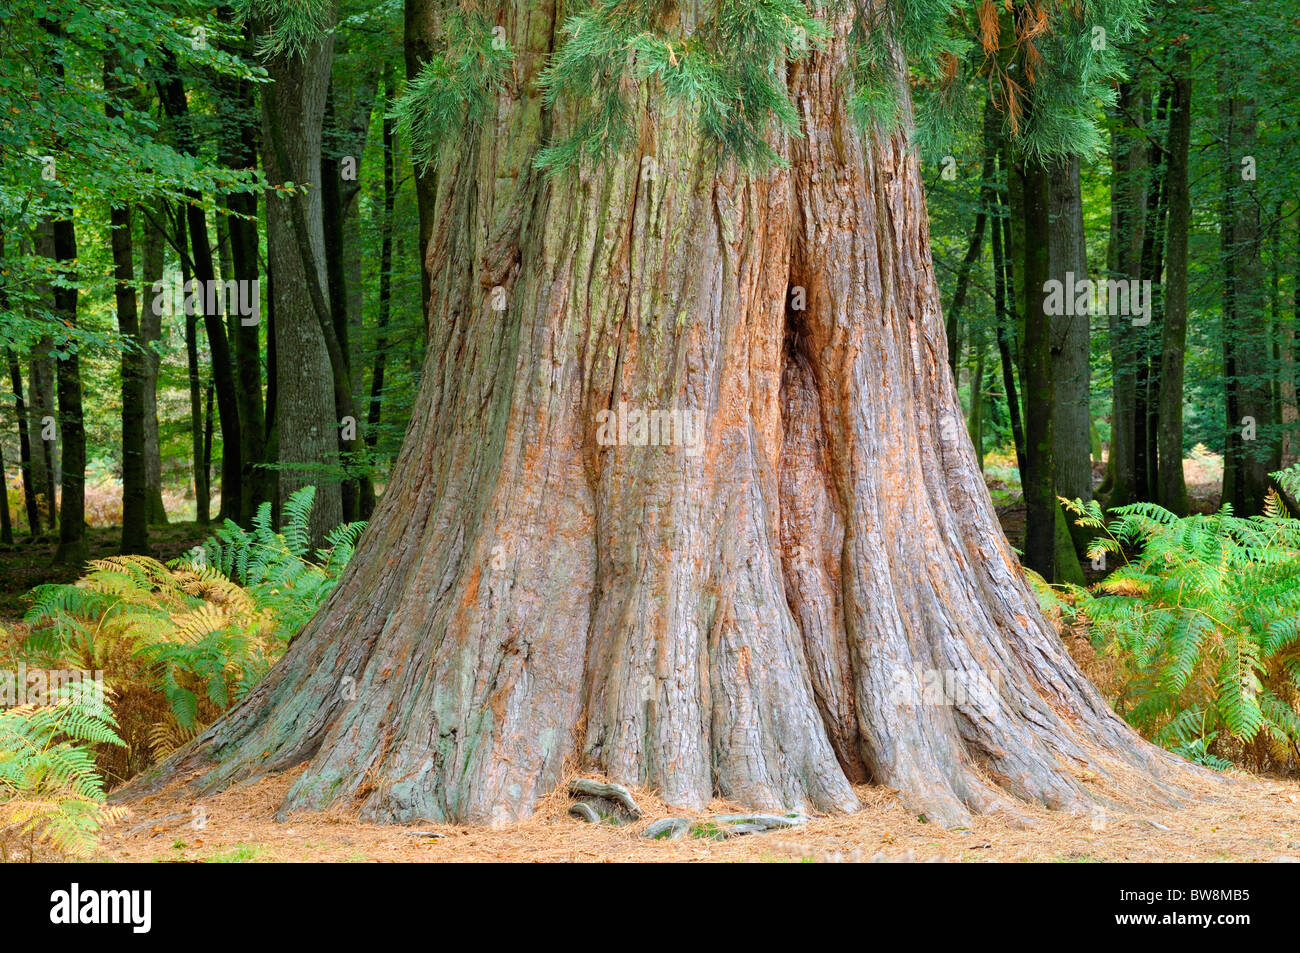 Giant Redwood/Sequoia tree (Sequoia Giganteum) aka Wellingtonia - Stock Image